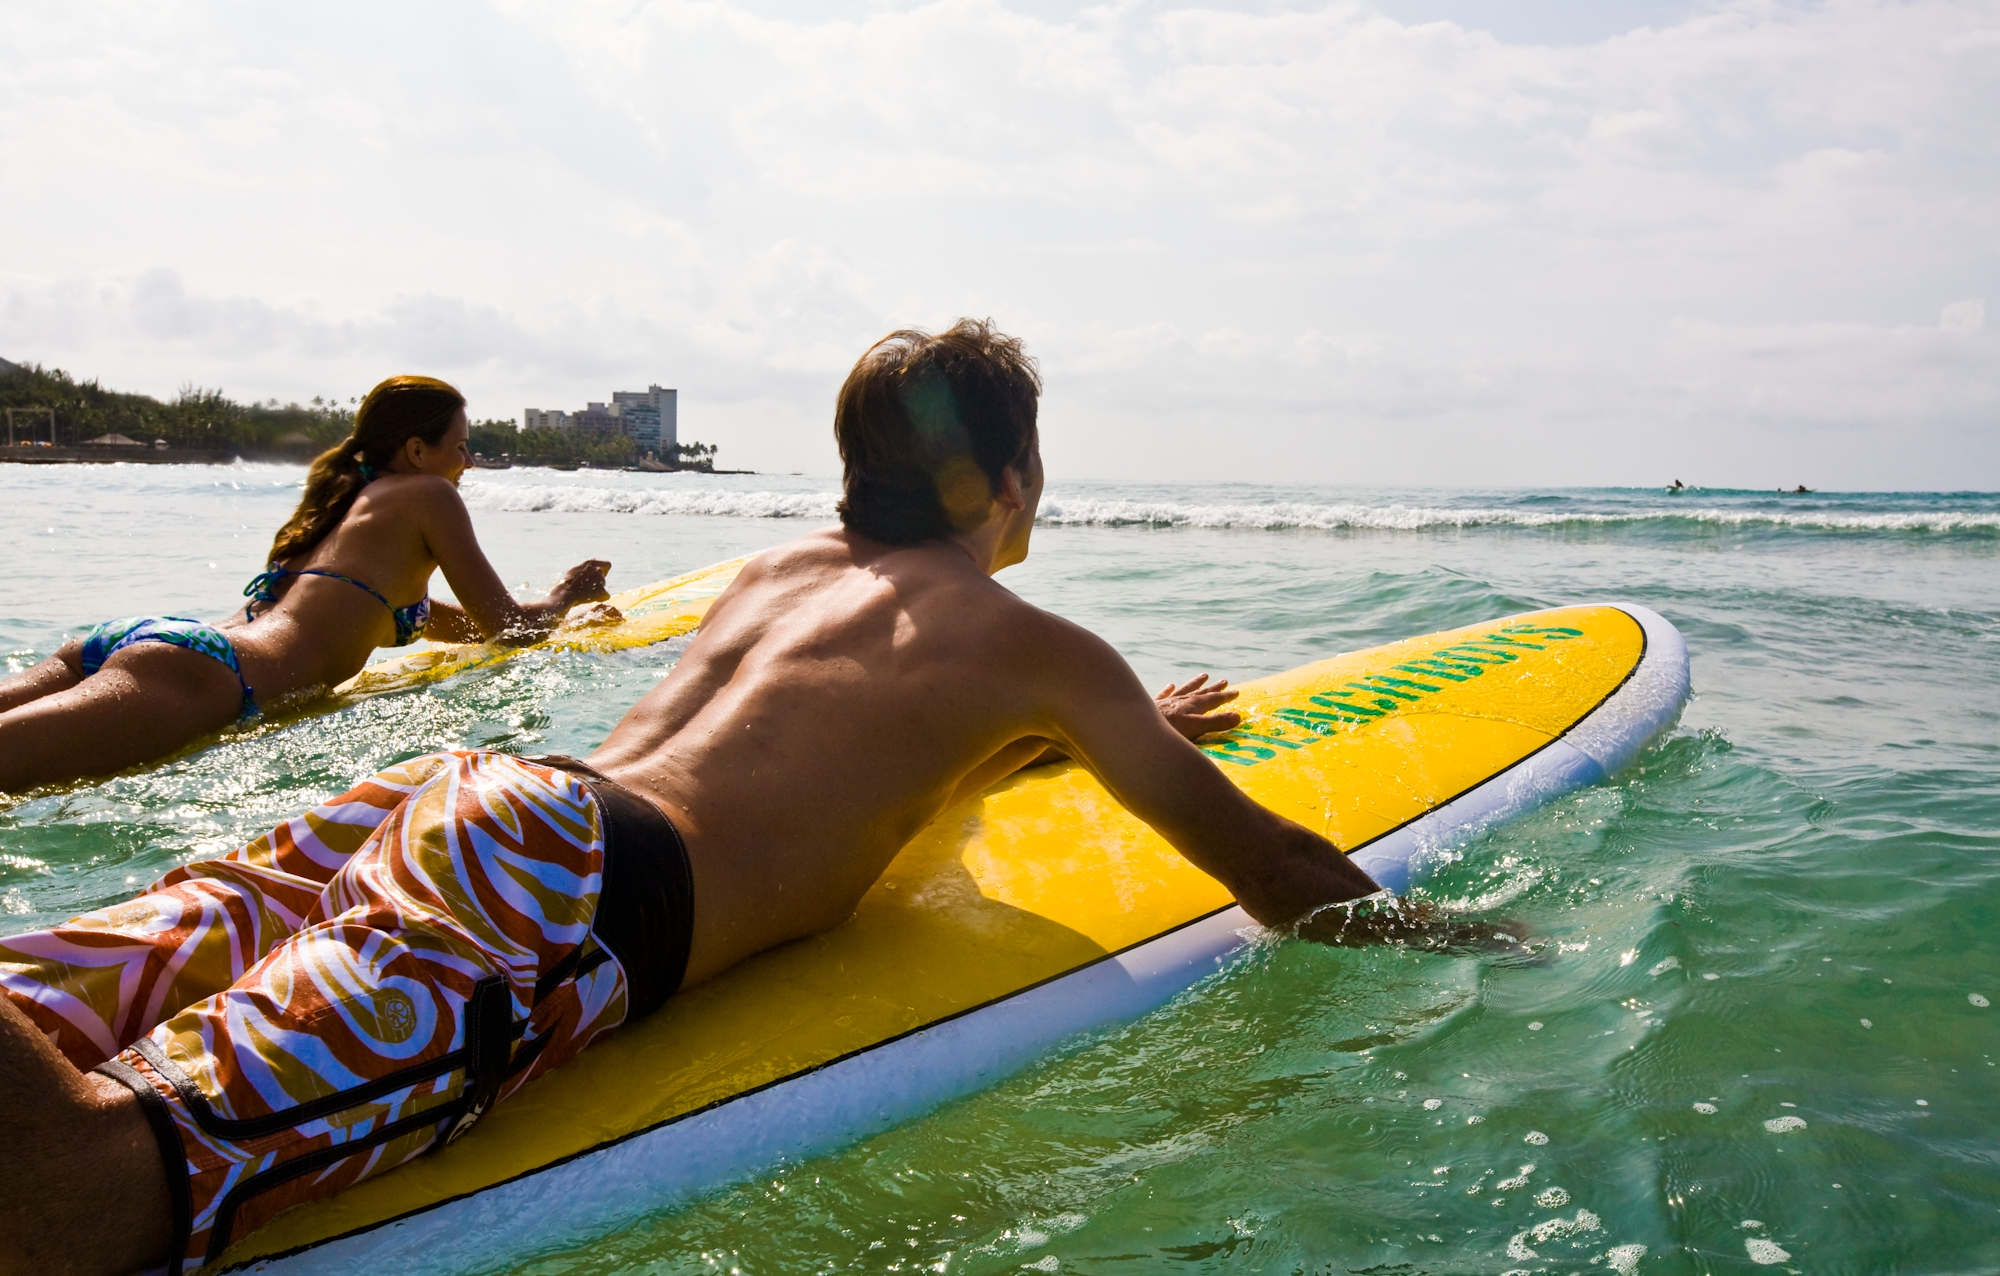 Hawaii-Tourism-Kids-Surfing